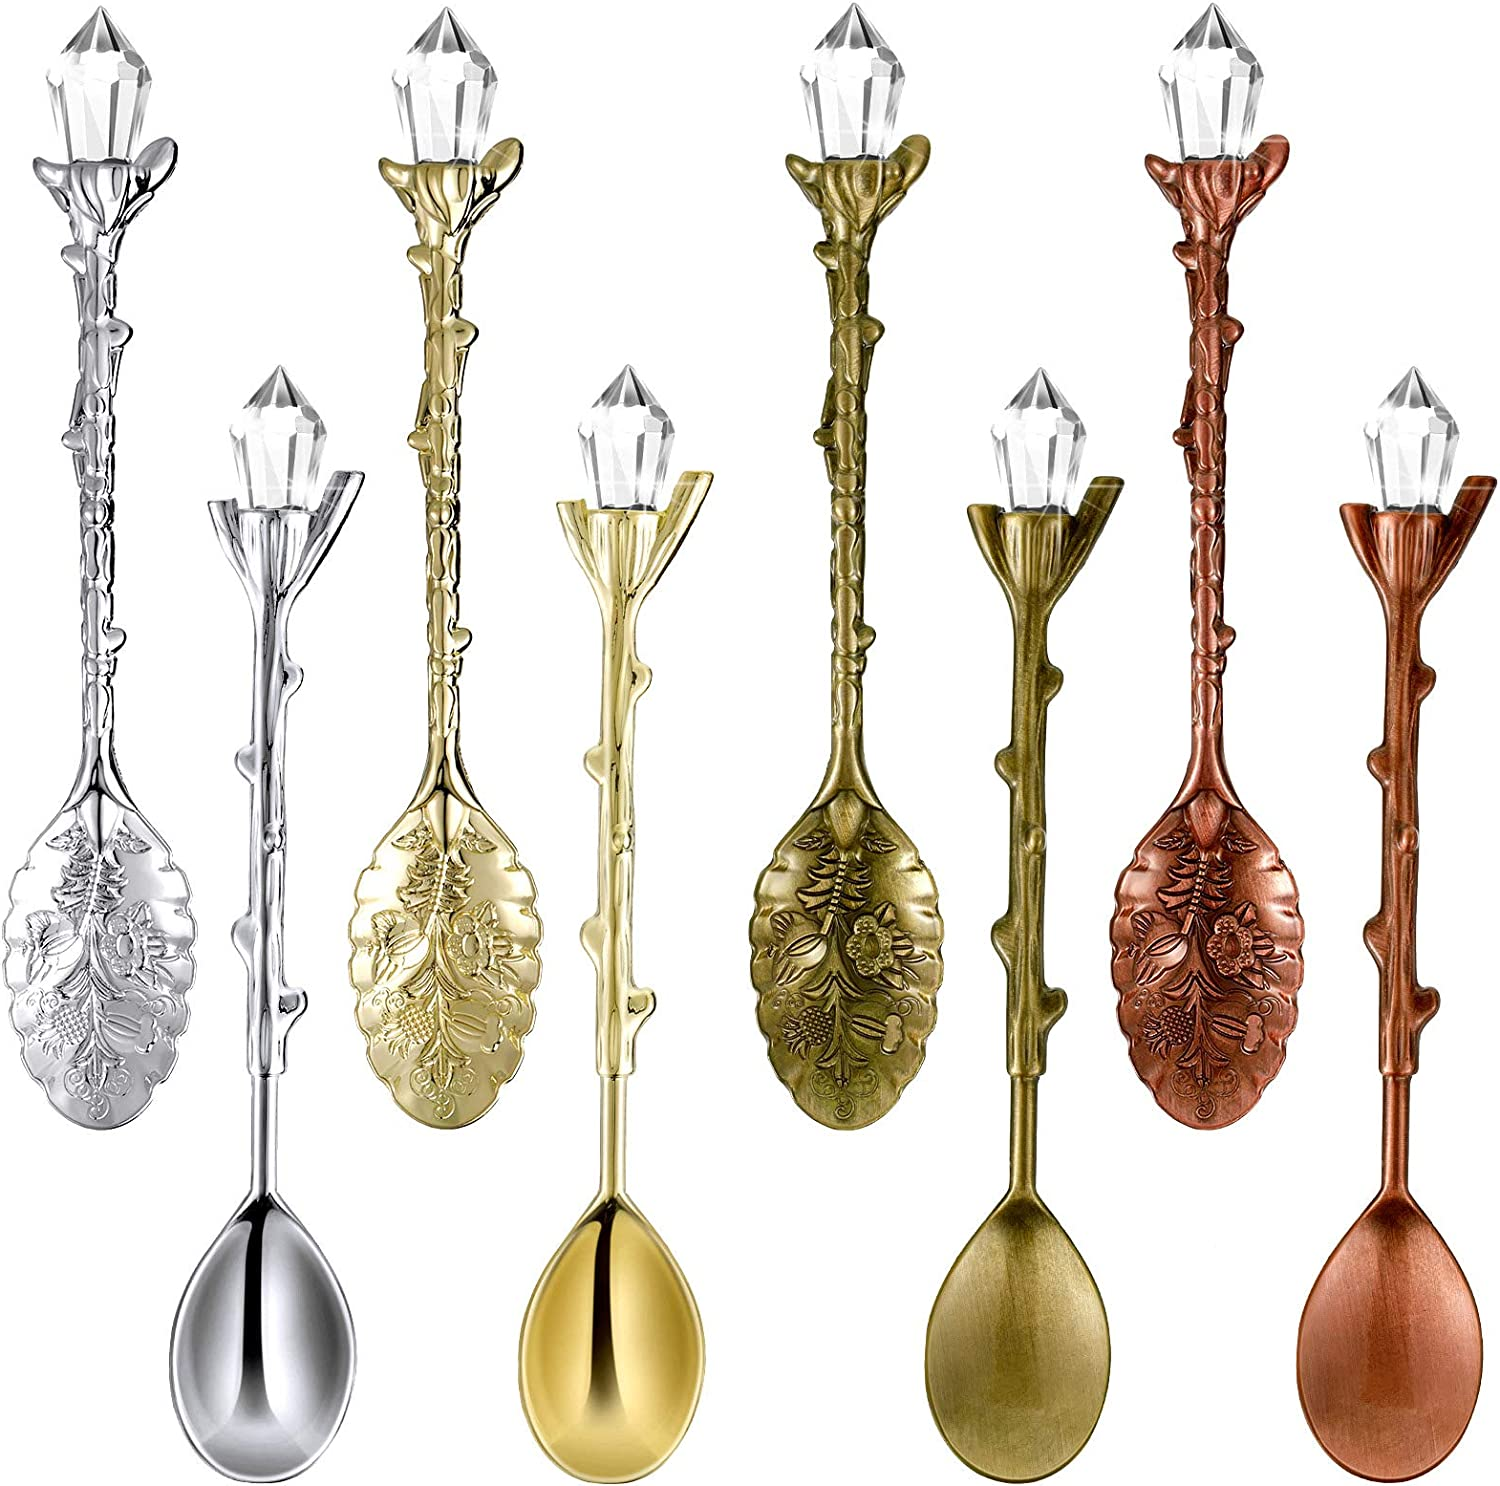 Mimorou 8 Pieces Retro Coffee Teaspoon Mini Ice Cream Dessert Crystal Spoon Fancy Little Spoon Scoop Crystal Stirring Spoon Dessert Ice Cream Scoop for Cafe Home Office Bar Gadgets, 2 Styles, 4 Colors